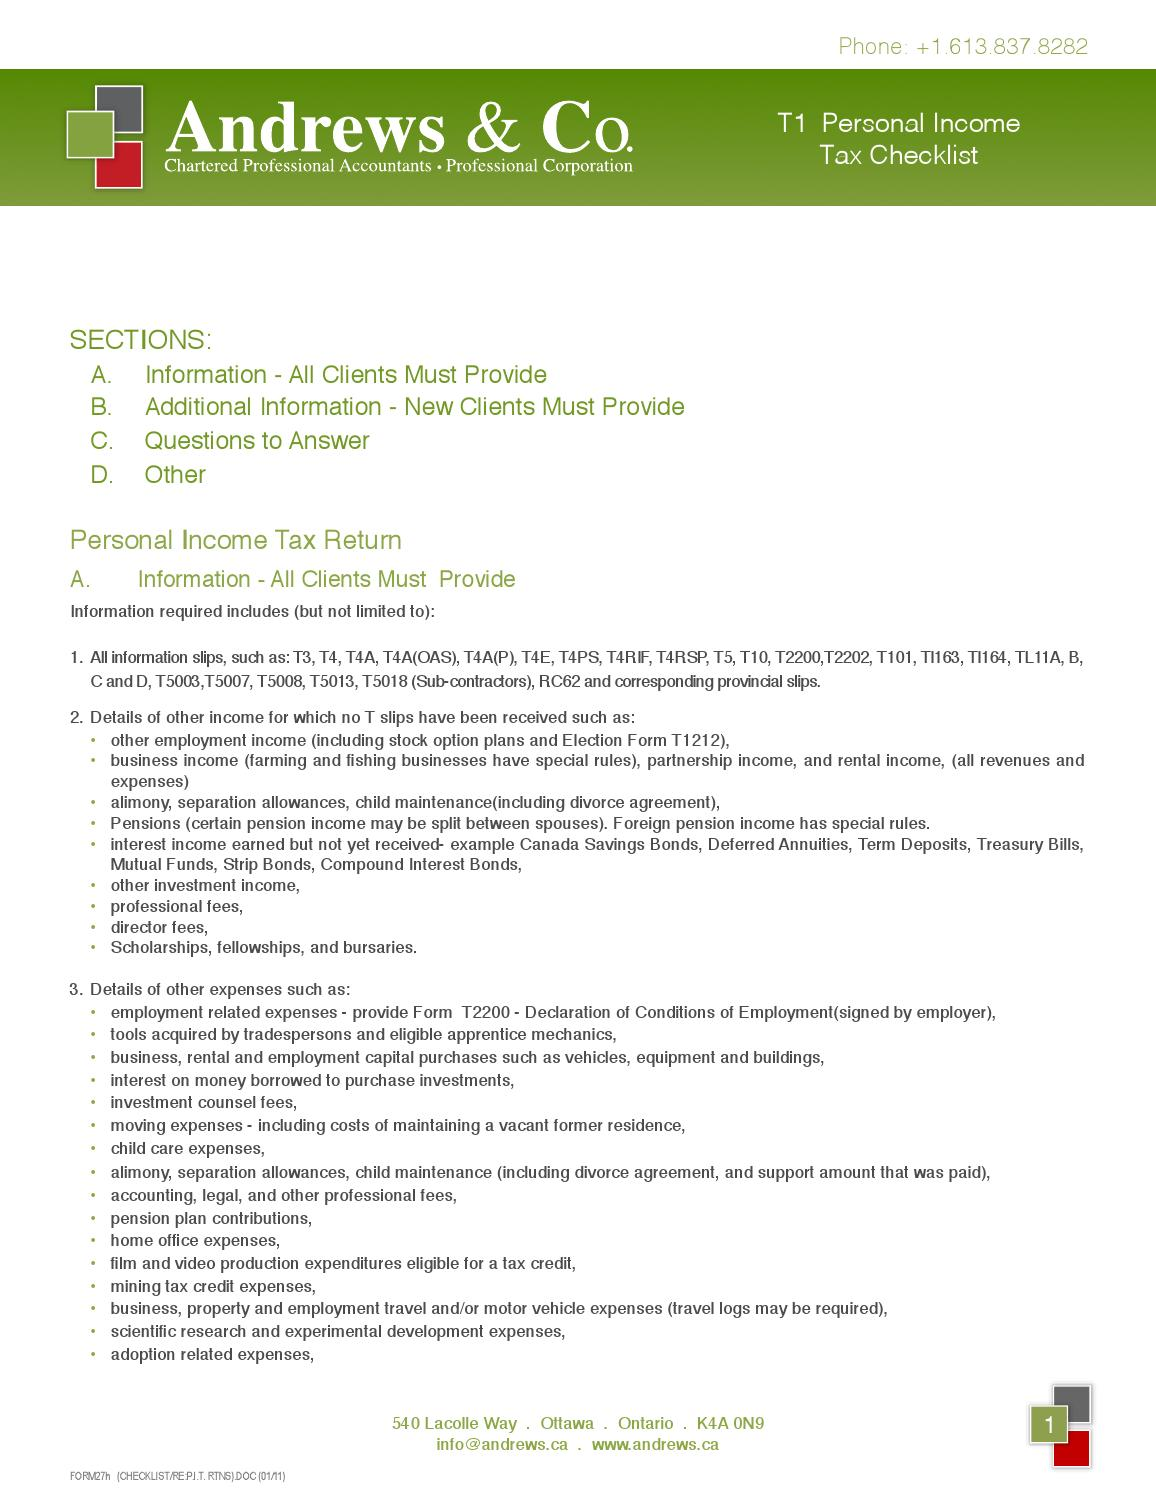 Personal Tax Checklist by Andrews & Co | Chartered